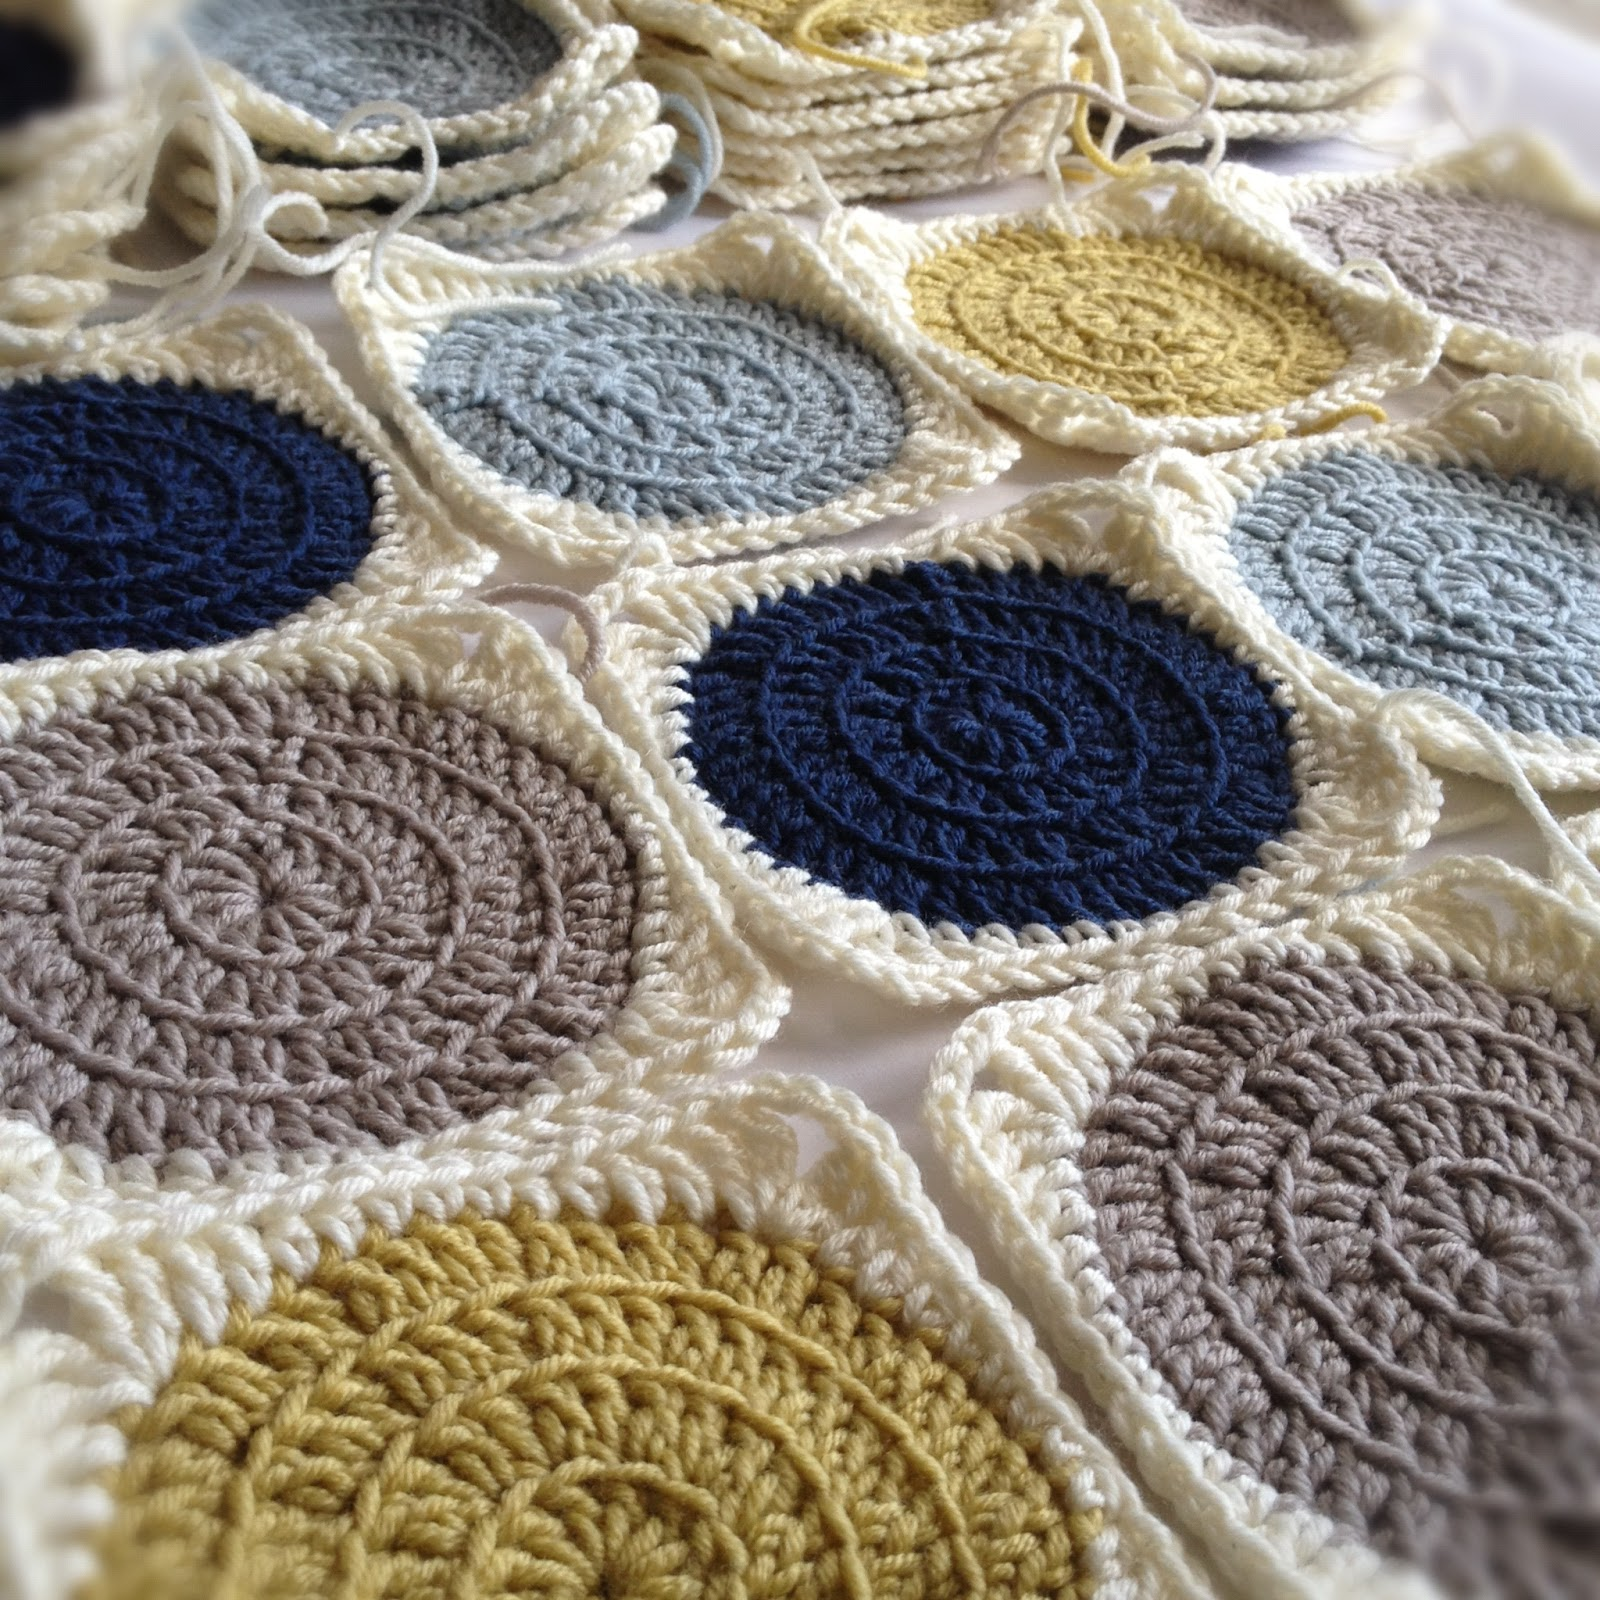 Crocheting In A Circle : Disclaimer: Please do not sell my patterns or claim them as your own.